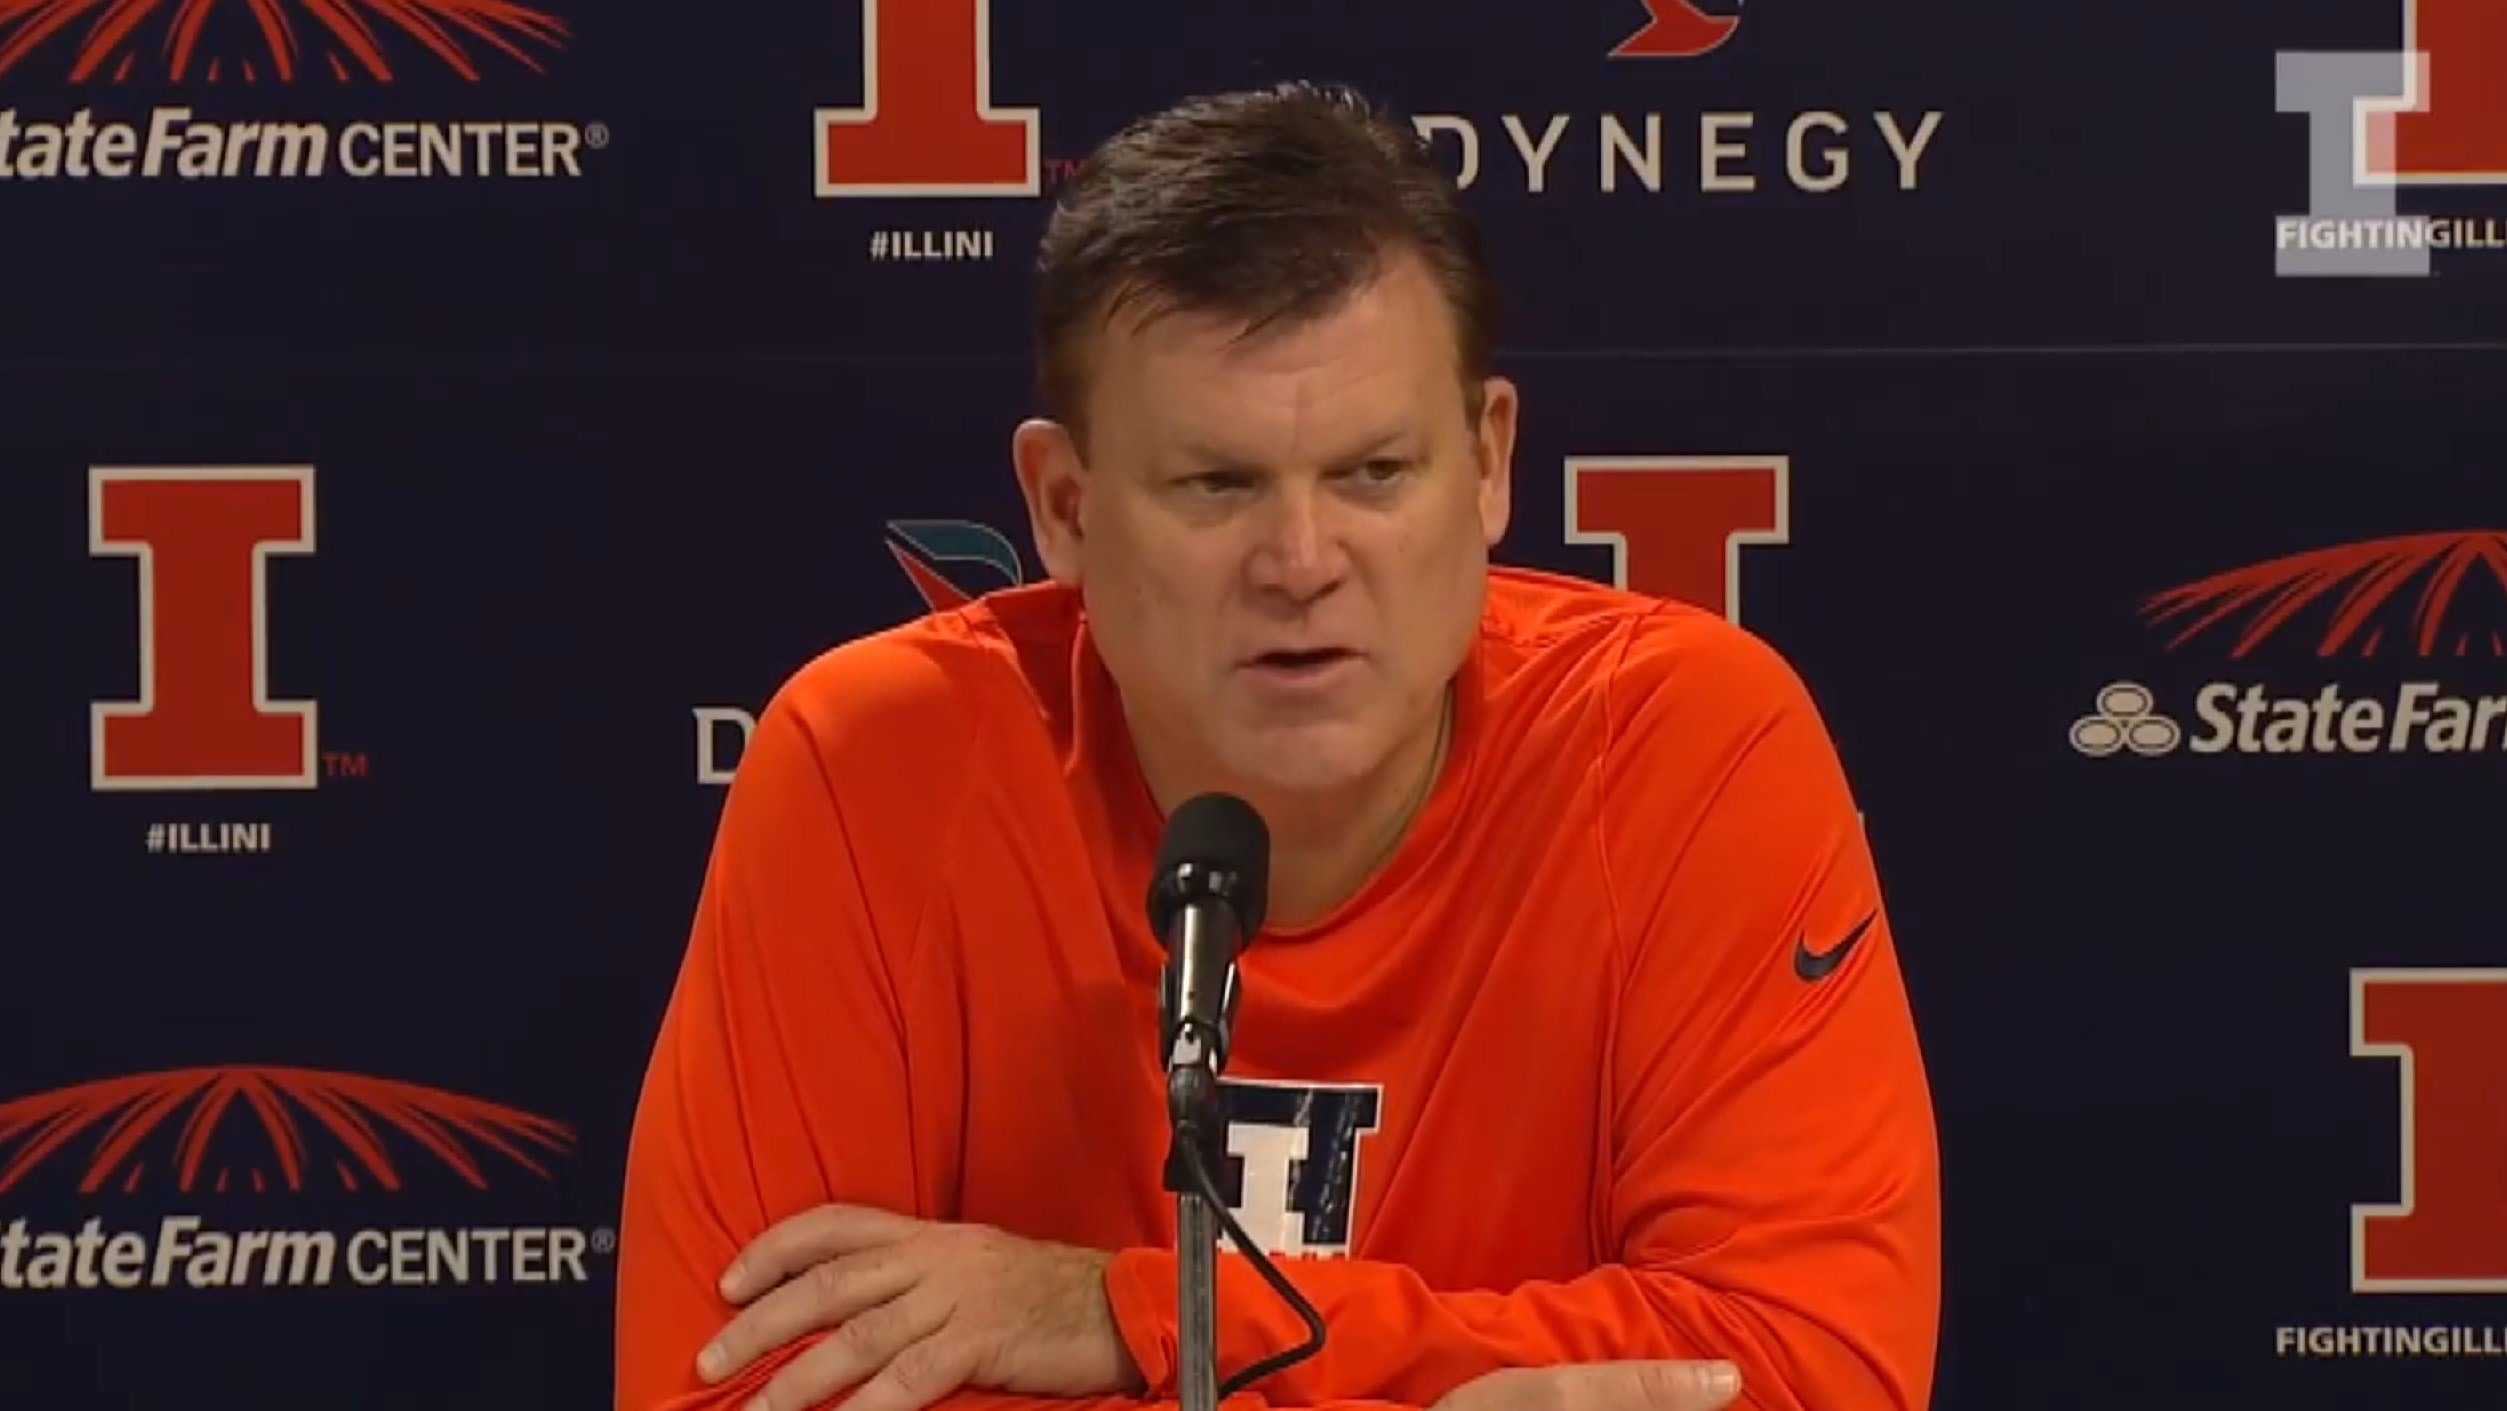 Brad Underwood and the Illini are 2-0 heading into Friday night's showdown with DePaul, which is scheduled for a 7:30 p.m. tipoff.